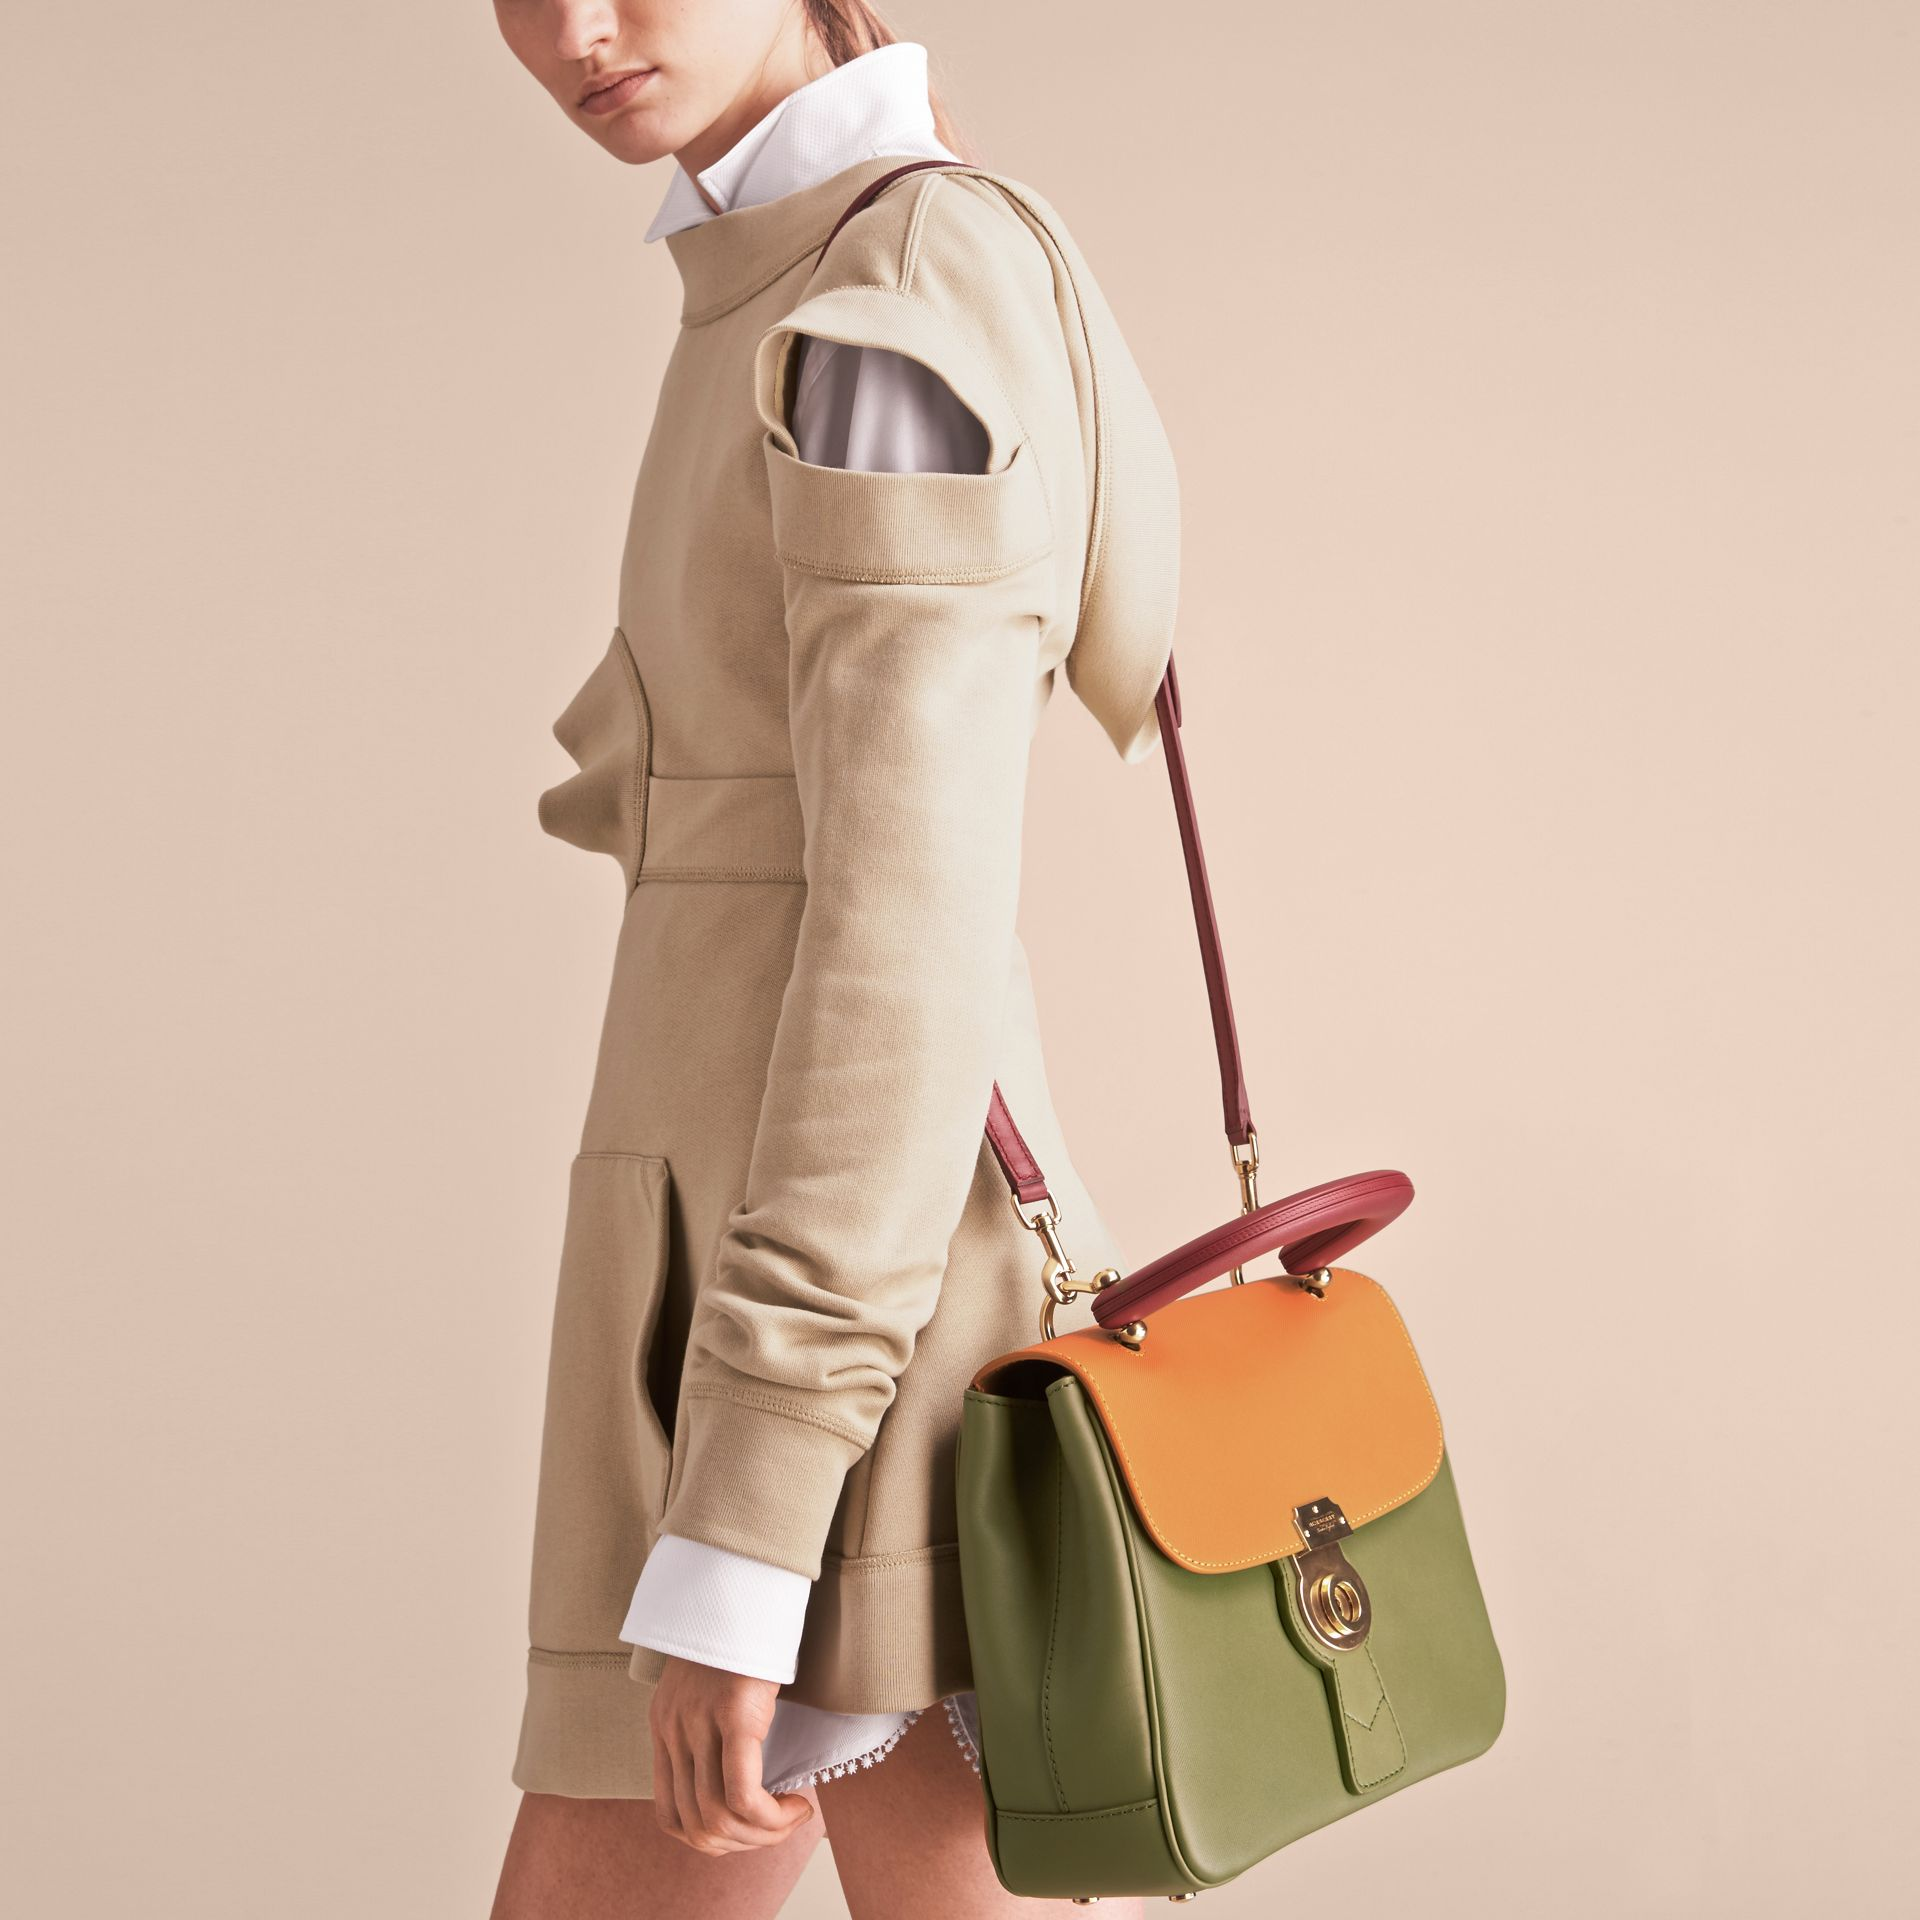 The Medium DK88 Top Handle Bag in Moss Green/ochre Yellow - Women | Burberry United States - gallery image 7